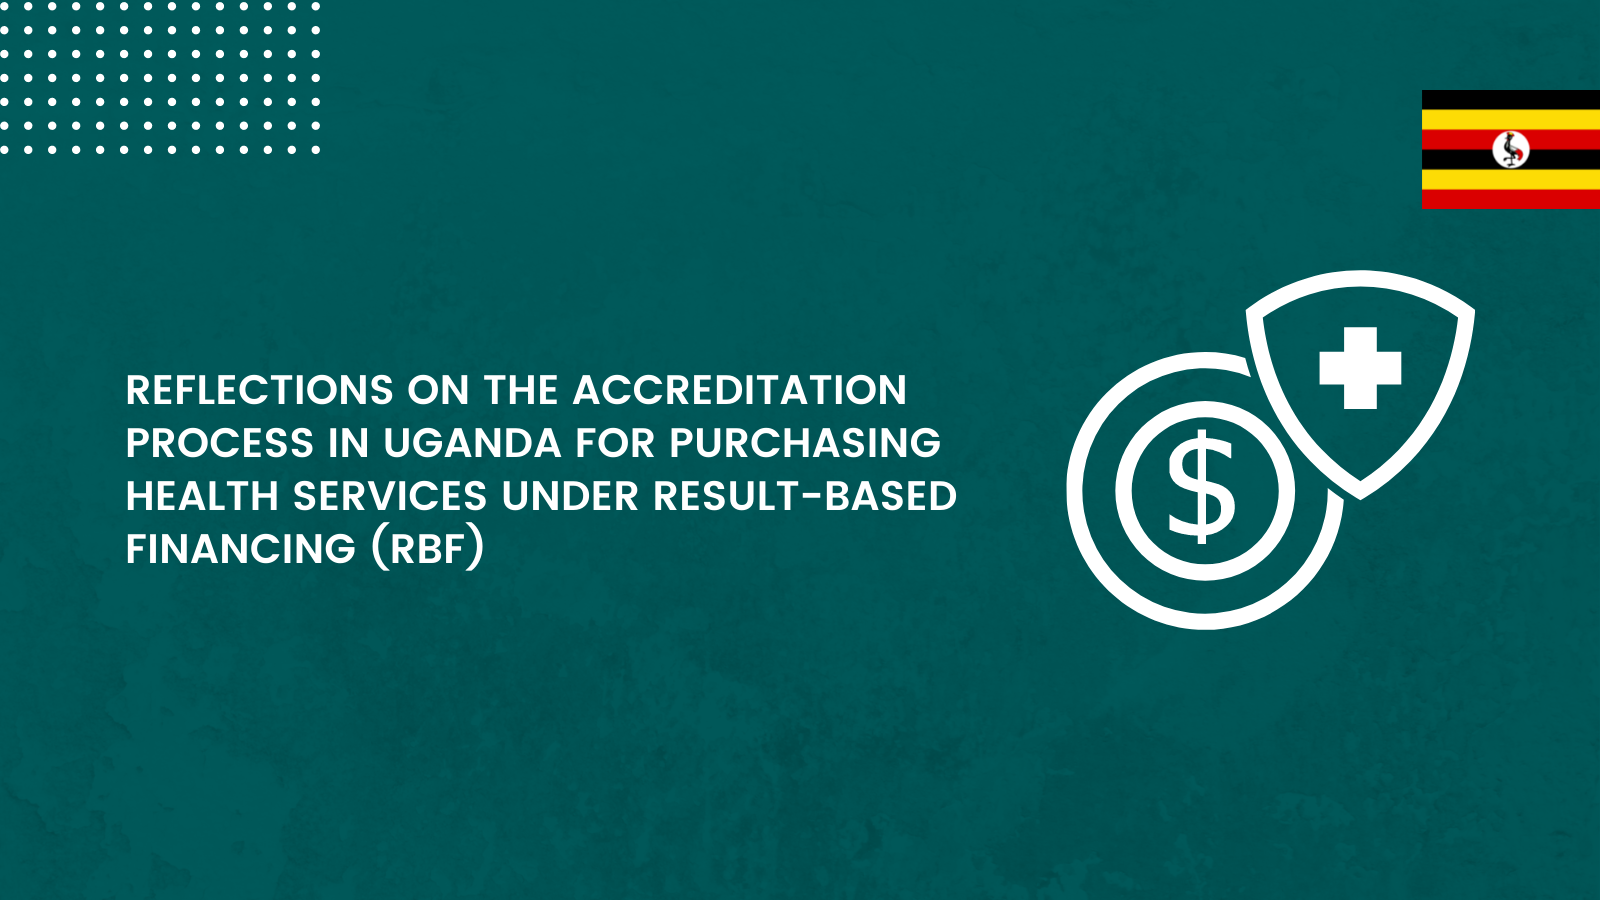 Reflections on the Accreditation Process in Uganda for Purchasing Health Services Under Result-Based Financing (RBF)